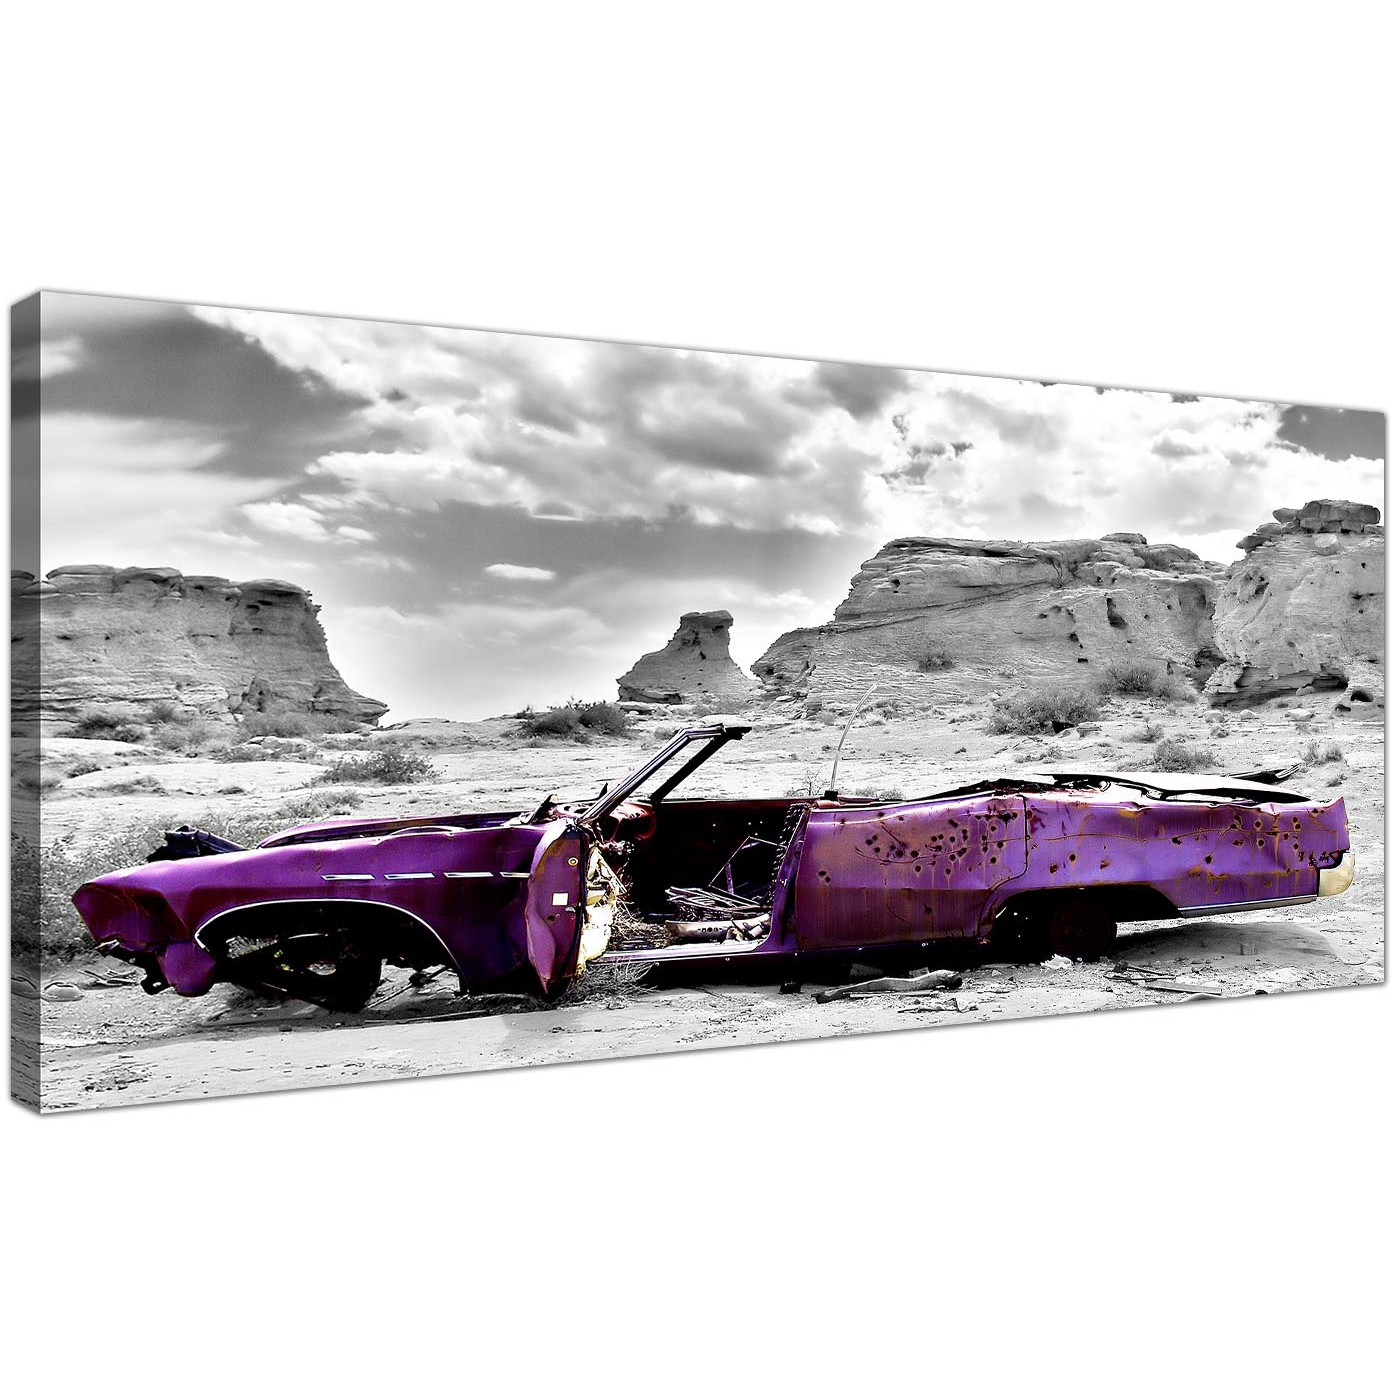 Delightful Display Gallery Item 1; Cheap Canvas Wall Art Monochrome Grey Violet Wide  Landscape 1144 Display Gallery Item 2 ...